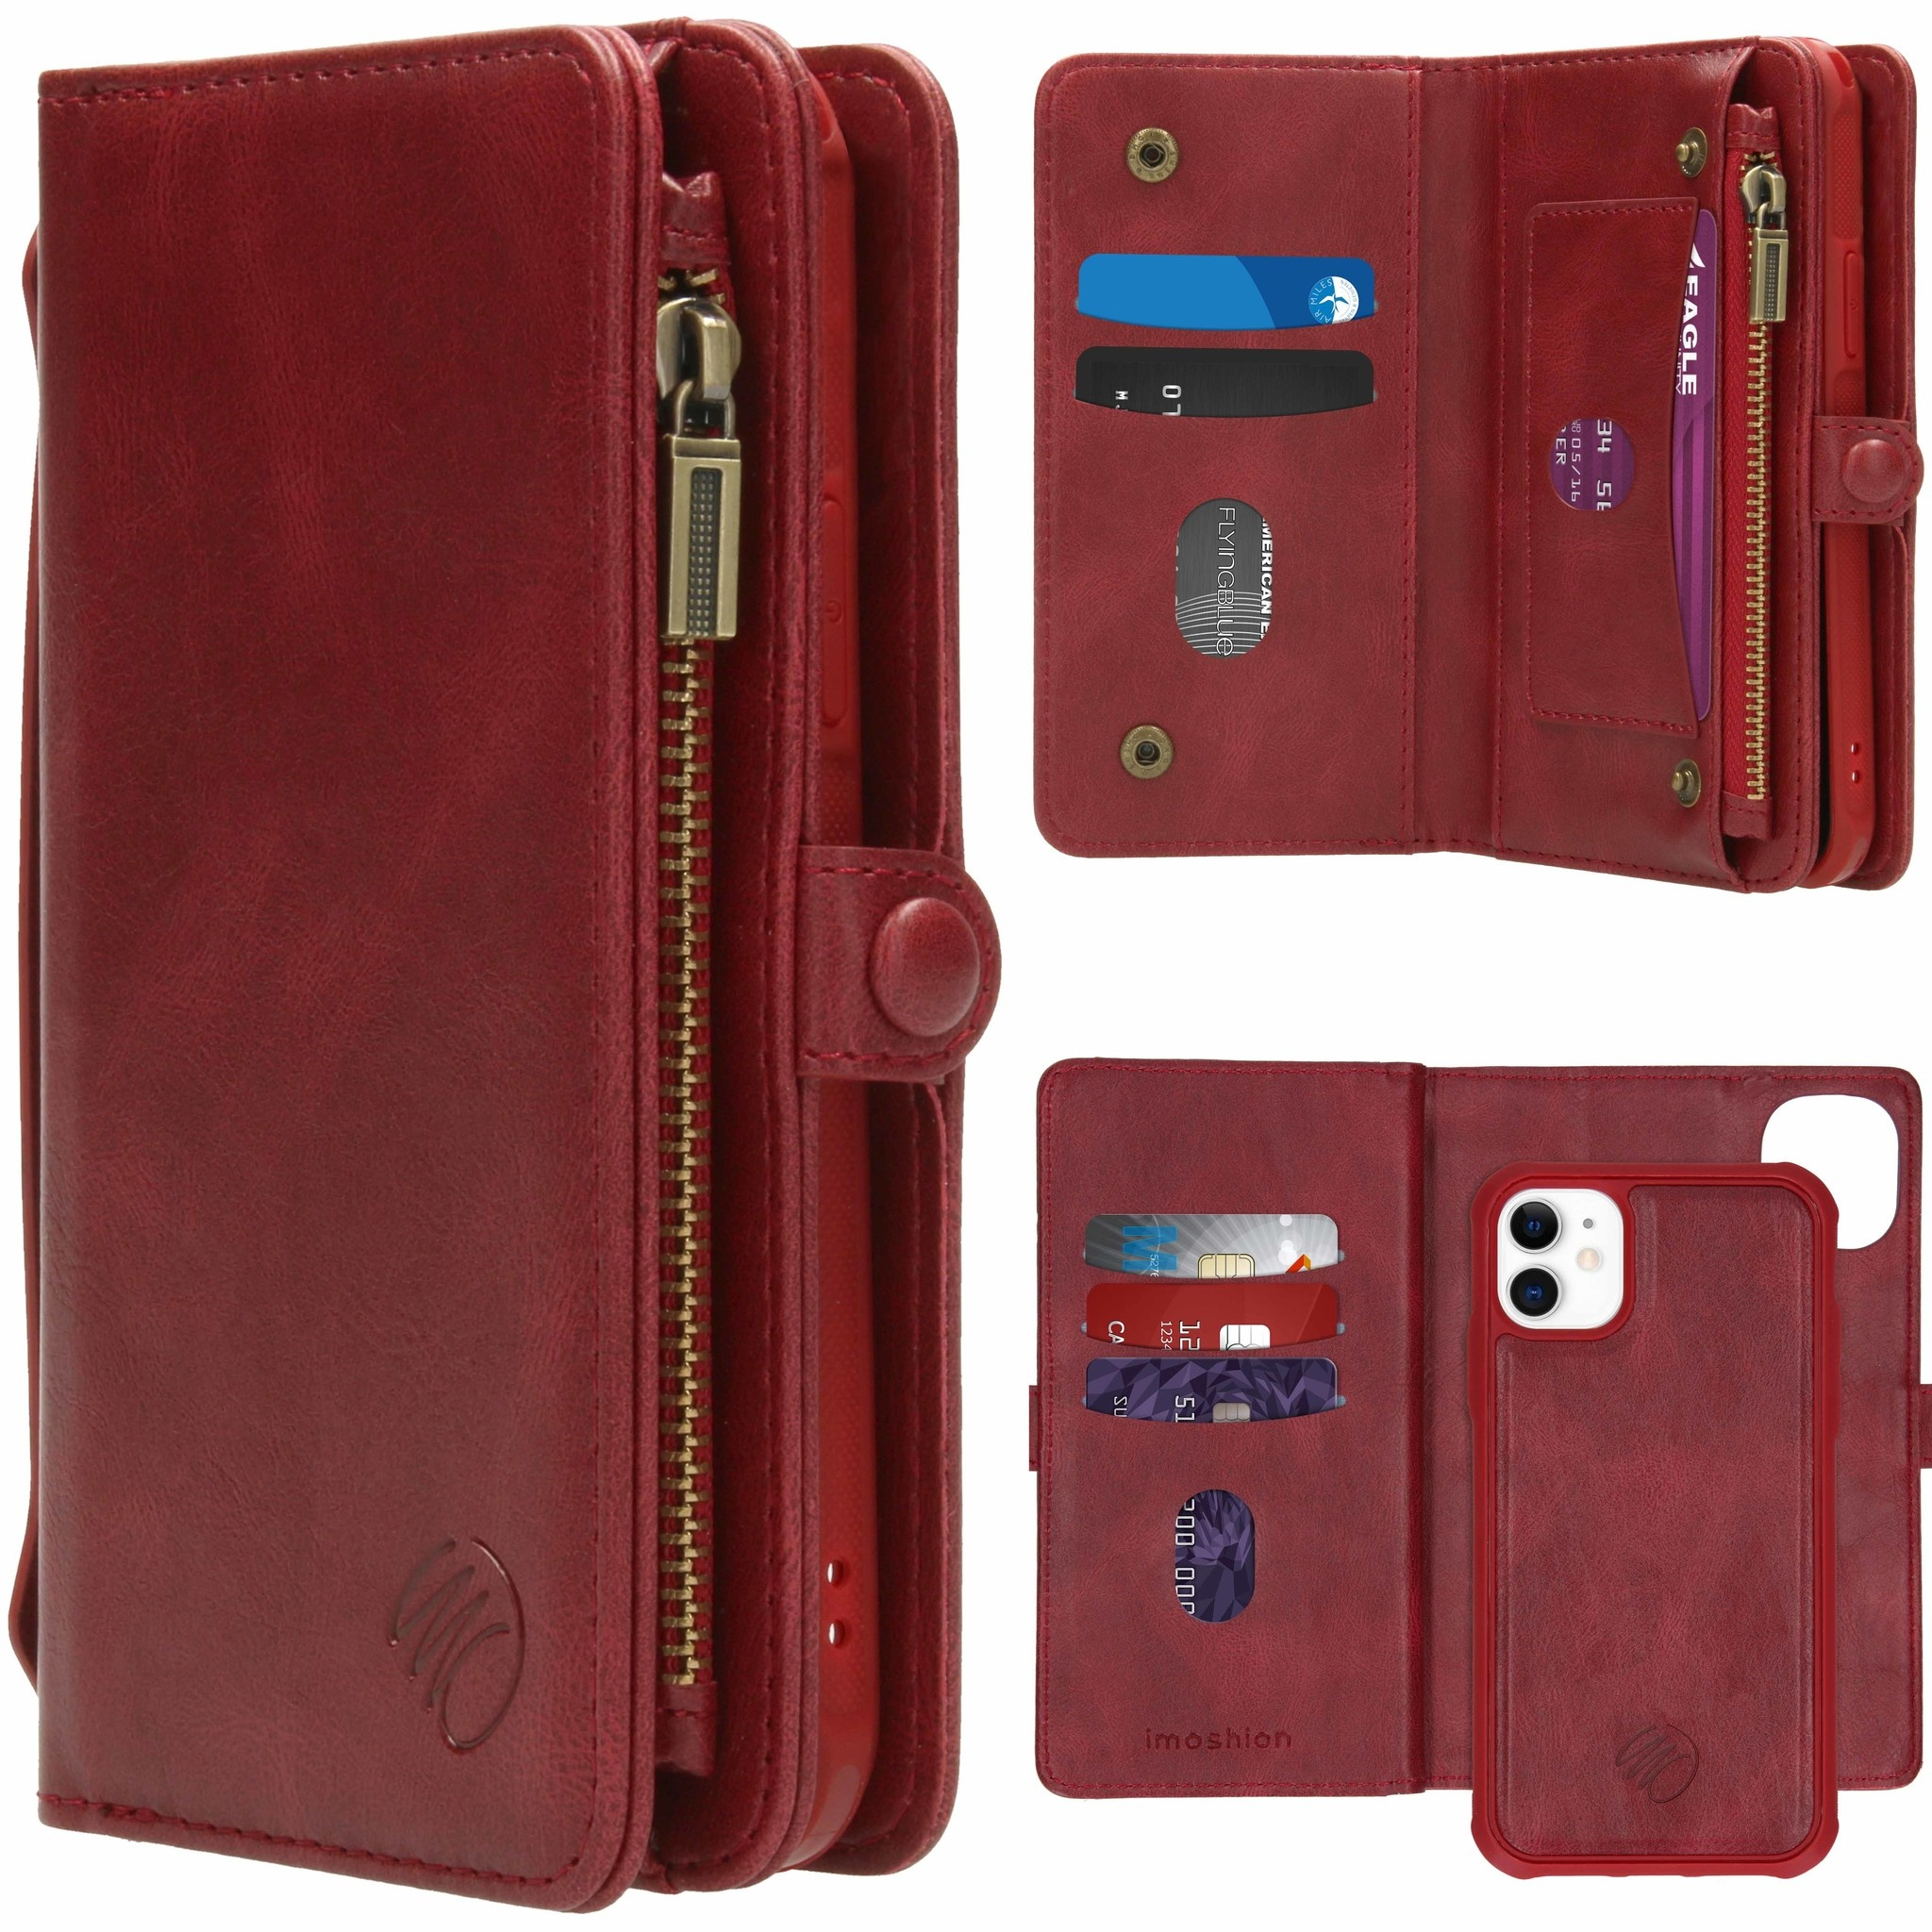 iMoshion 2-in-1 Wallet Booktype iPhone 11 - Rood